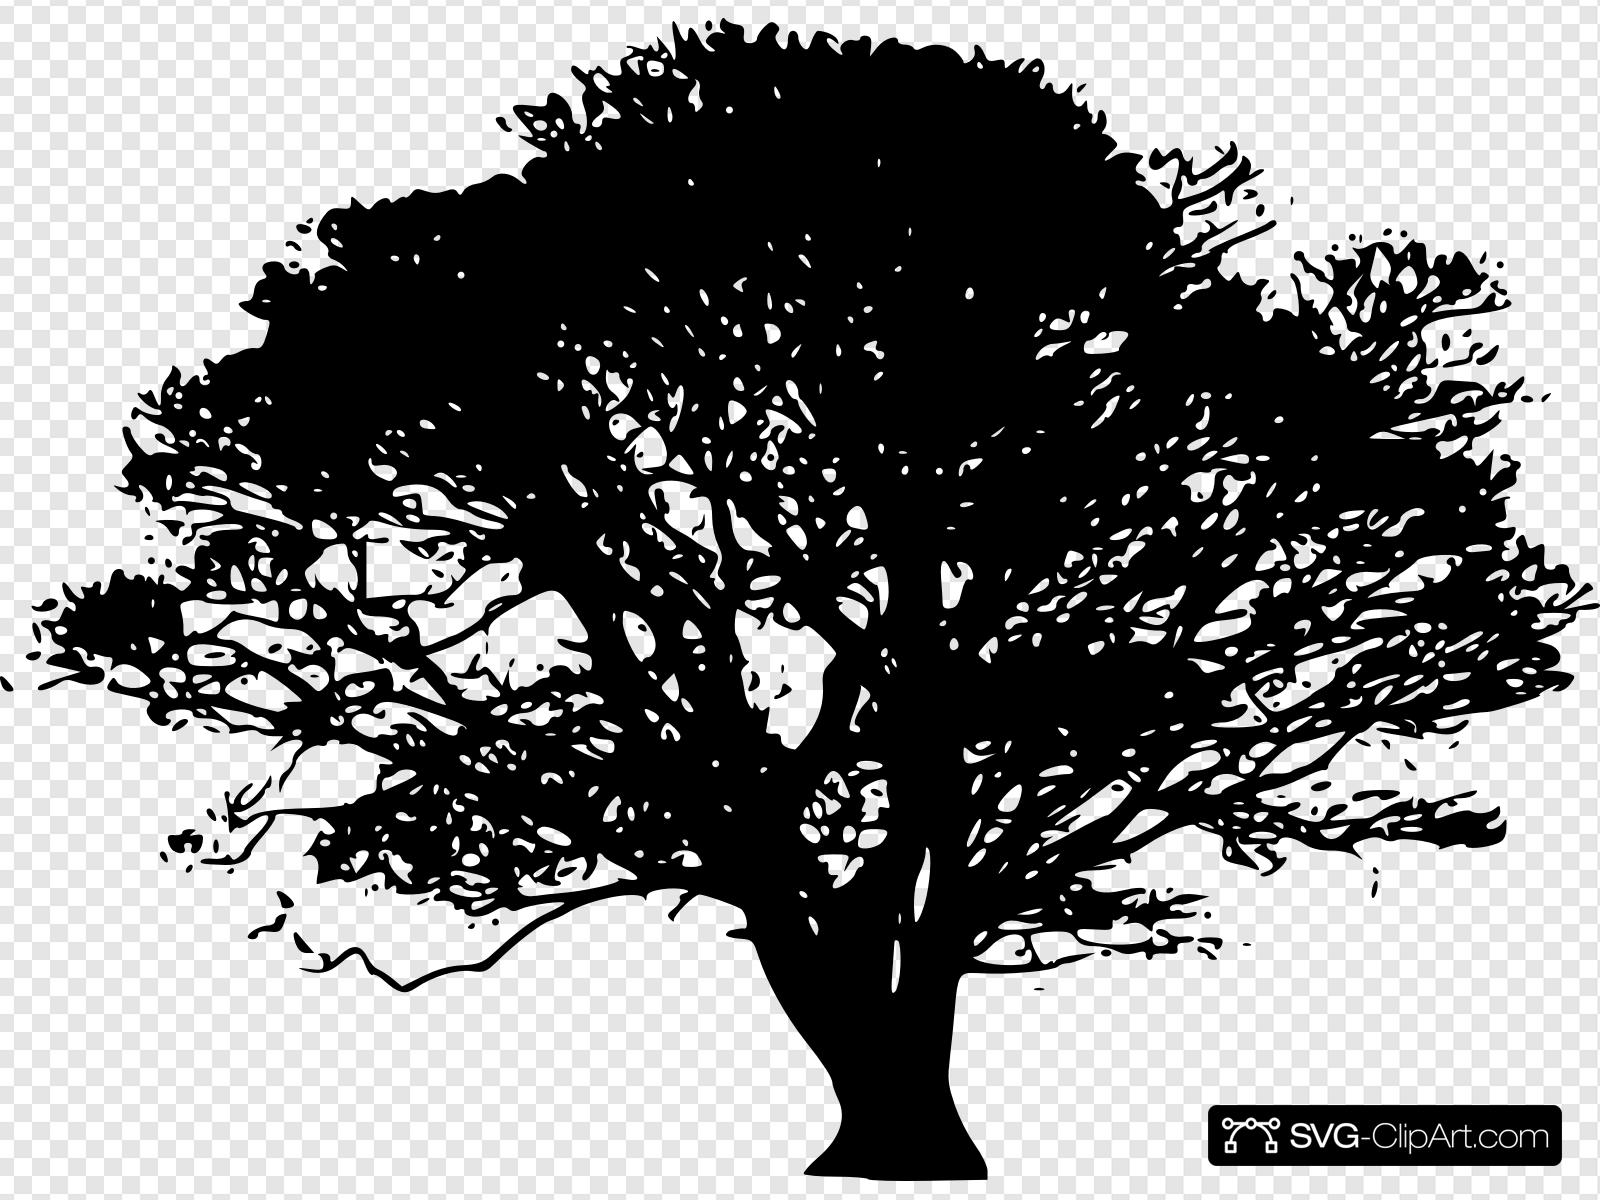 Arbol Clip art, Icon and SVG.